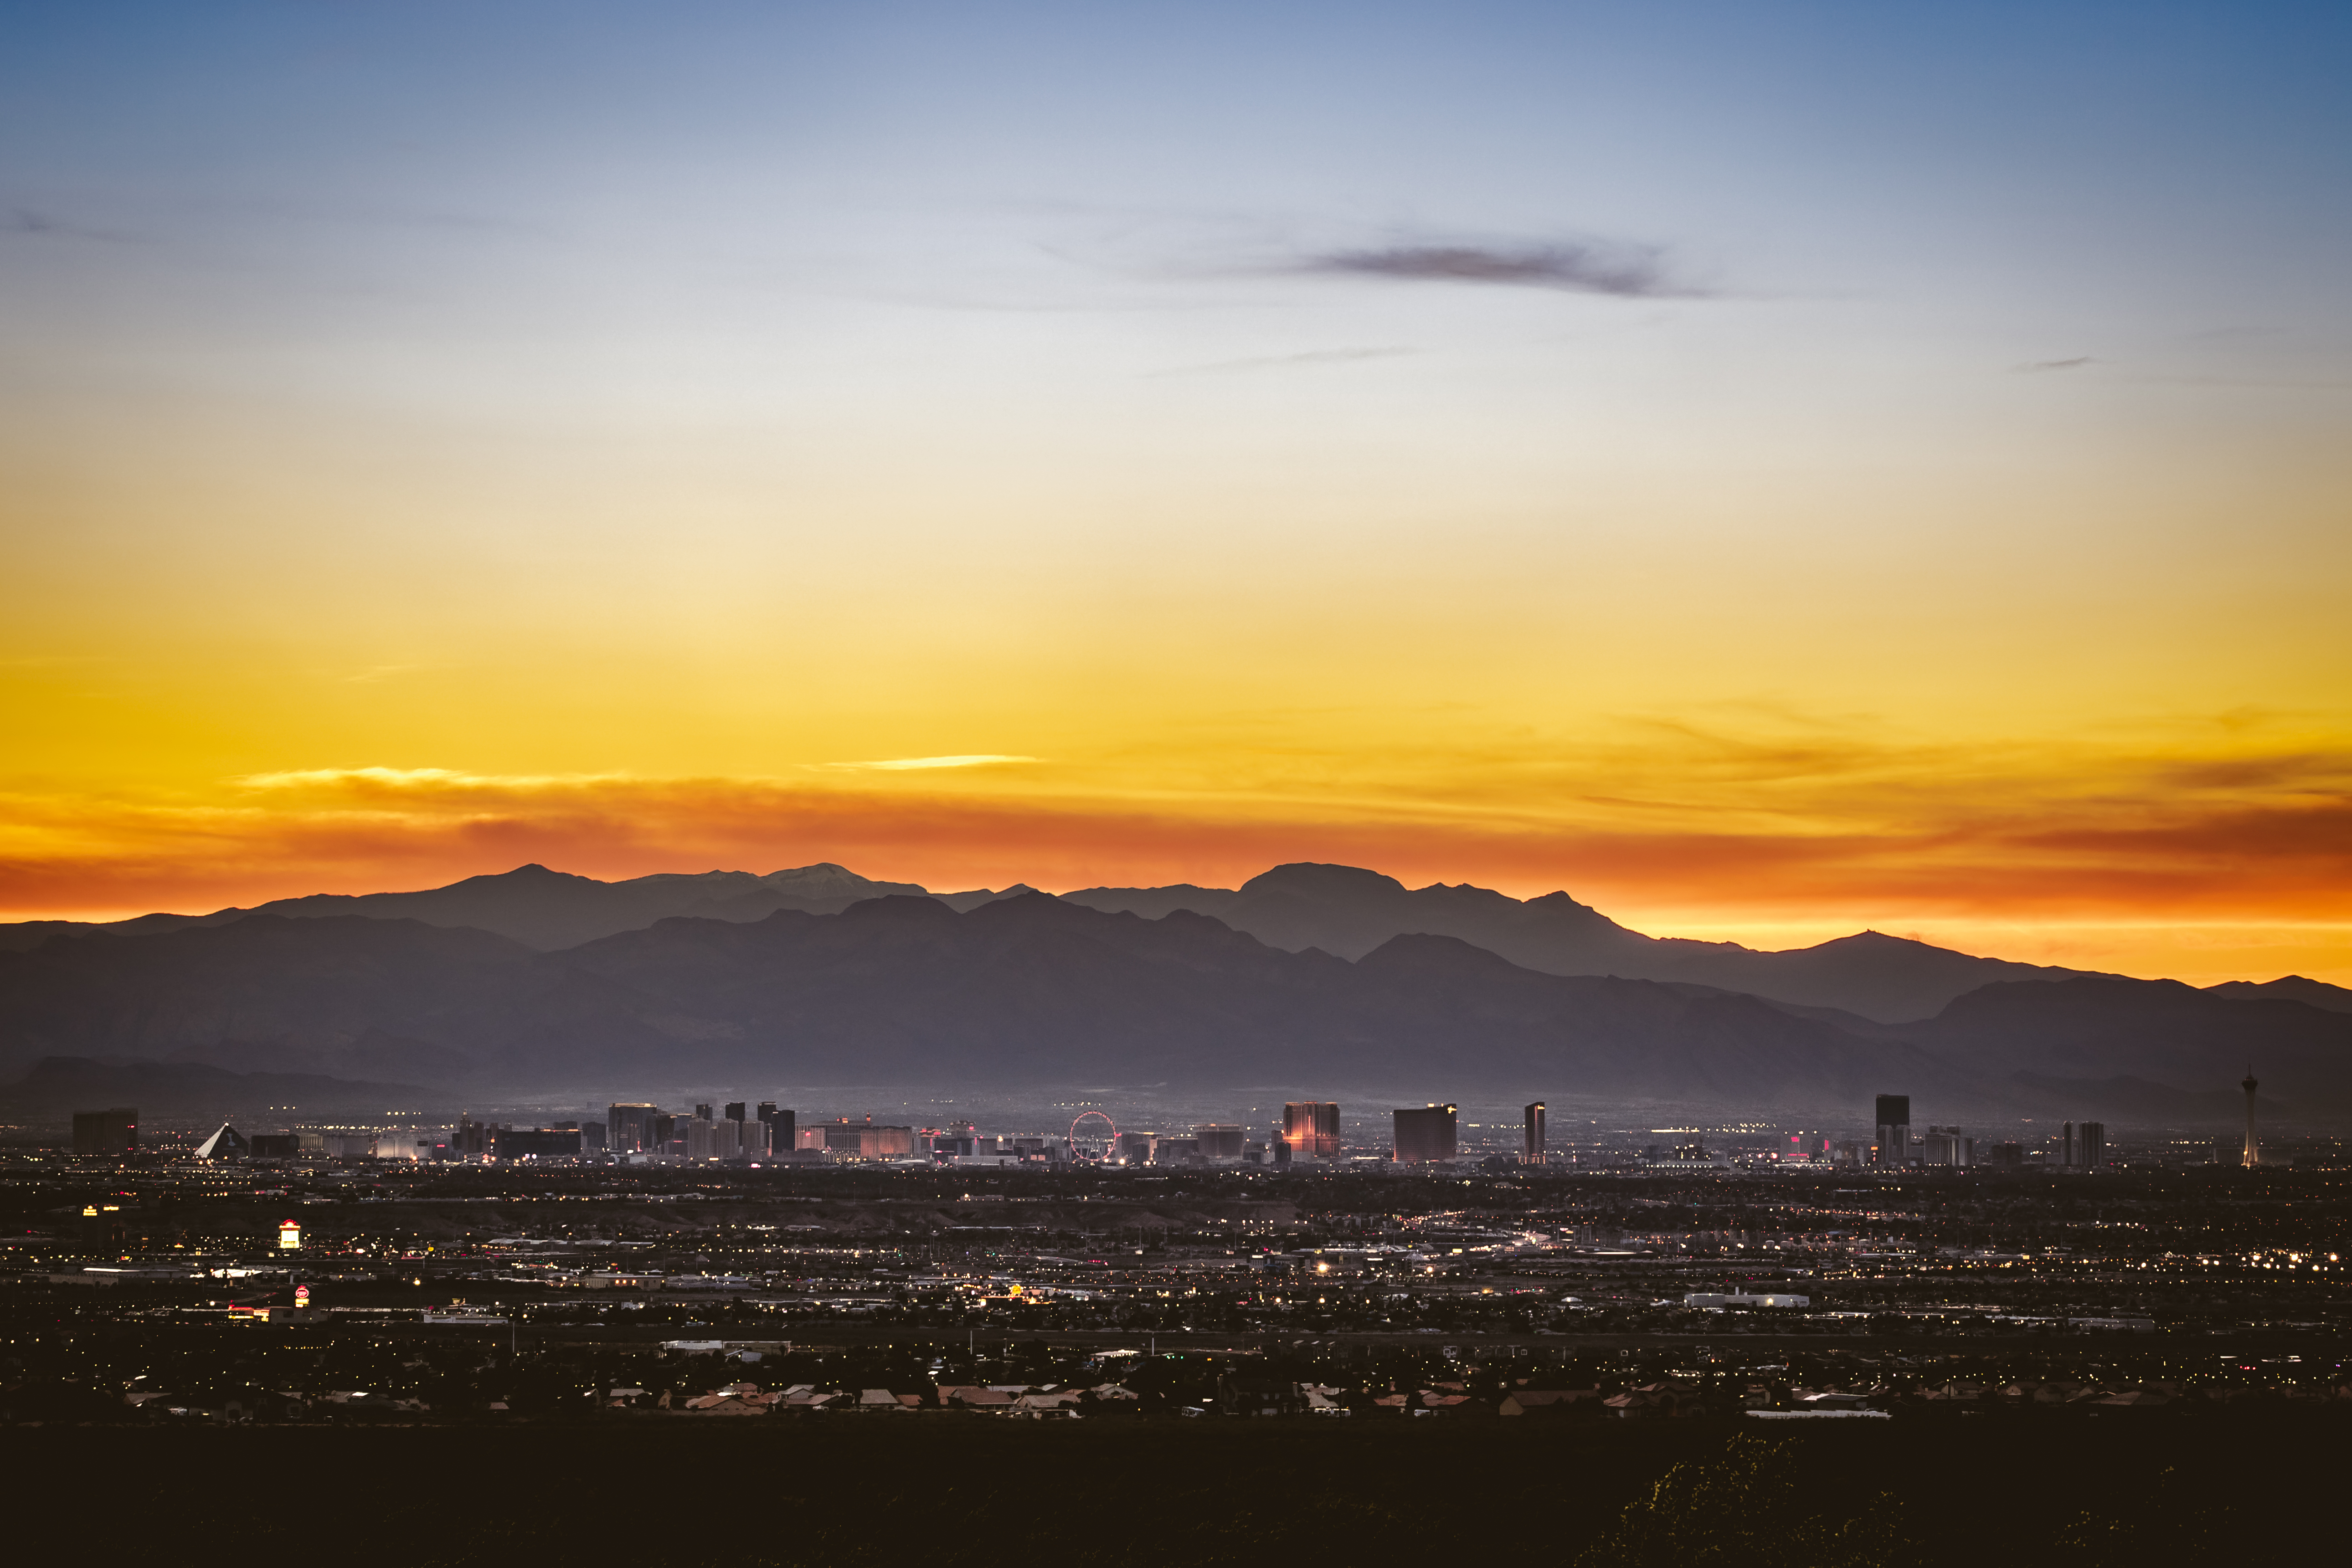 A sunset shot of the Las Vegas Strip taken from a quiet trail on the Southeast side of the valley